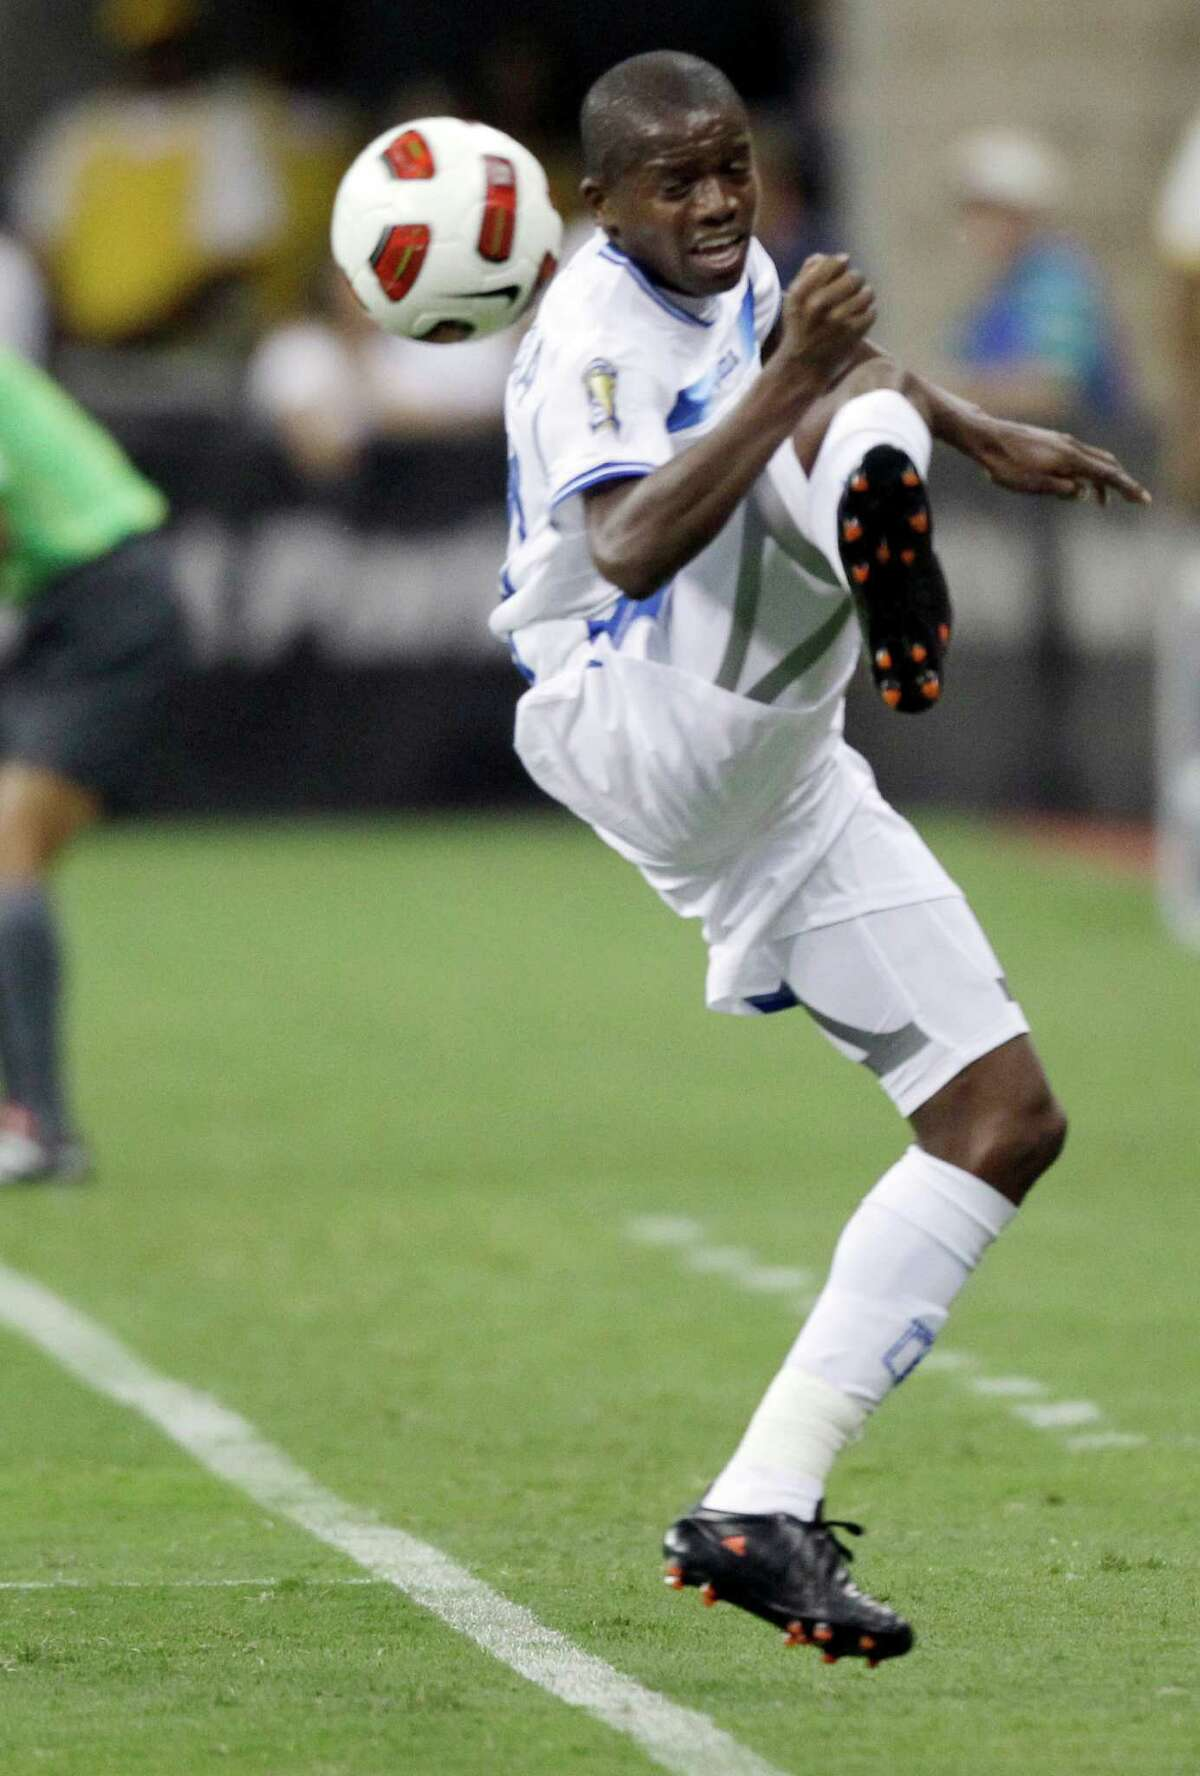 Honduras' Oscar Boniek Garcia loses the ball during the first half of a CONCACAF Gold Cup semifinal soccer match against Mexico on Wednesday, June 22, 2011, in Houston. (AP Photo/David J. Phillip)